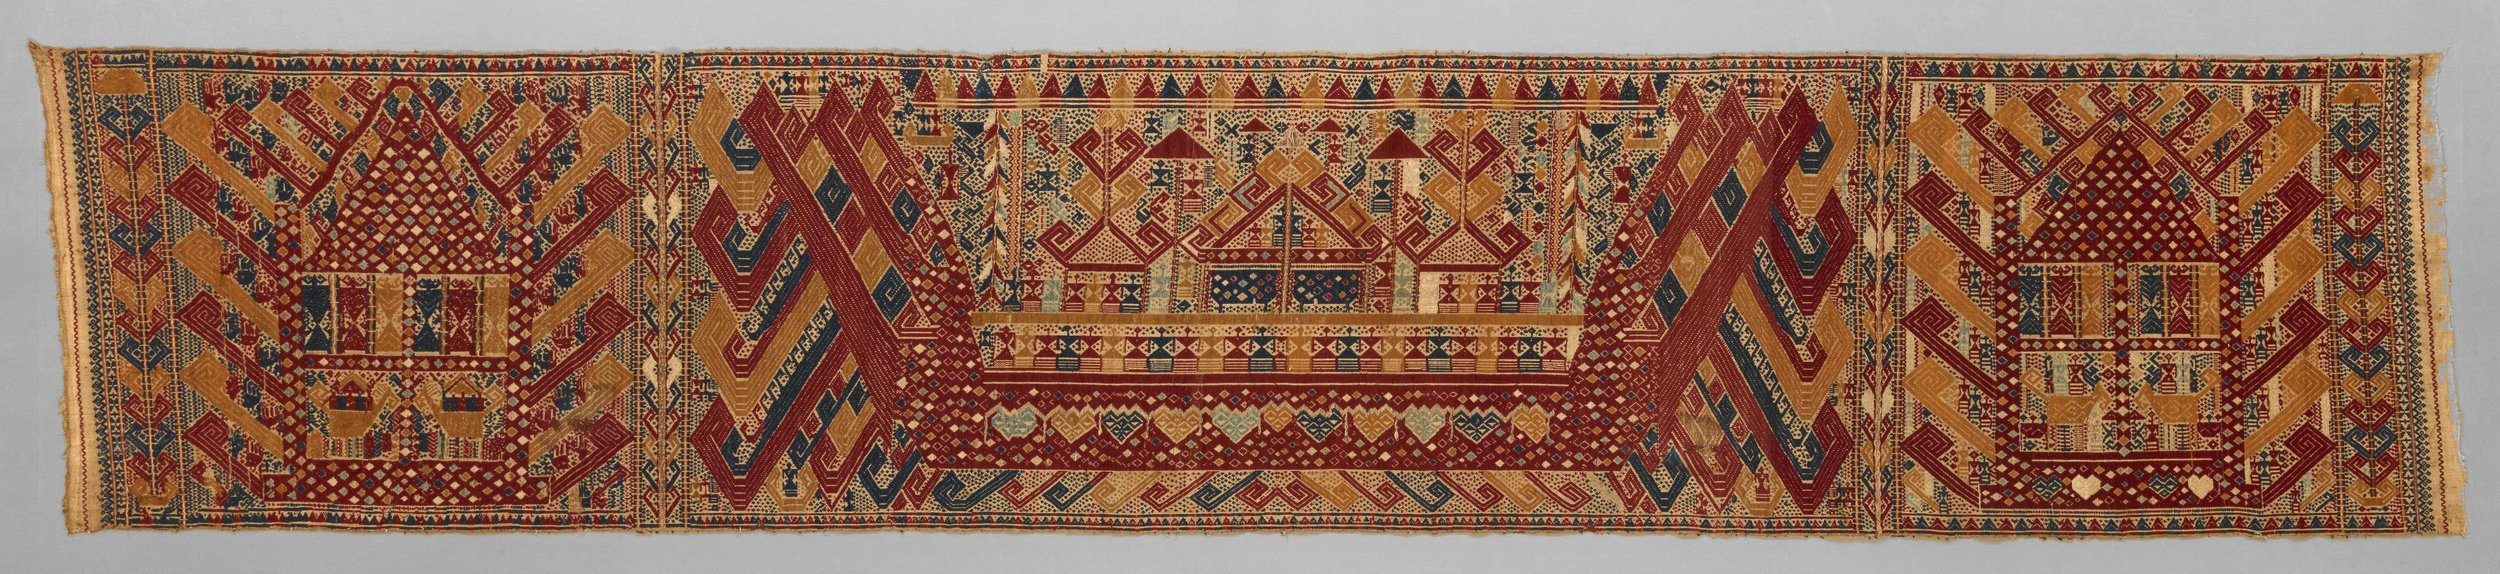 Ceremonial Banner Cloth | Palepai © Dallas Museum of Art | Texas, USA